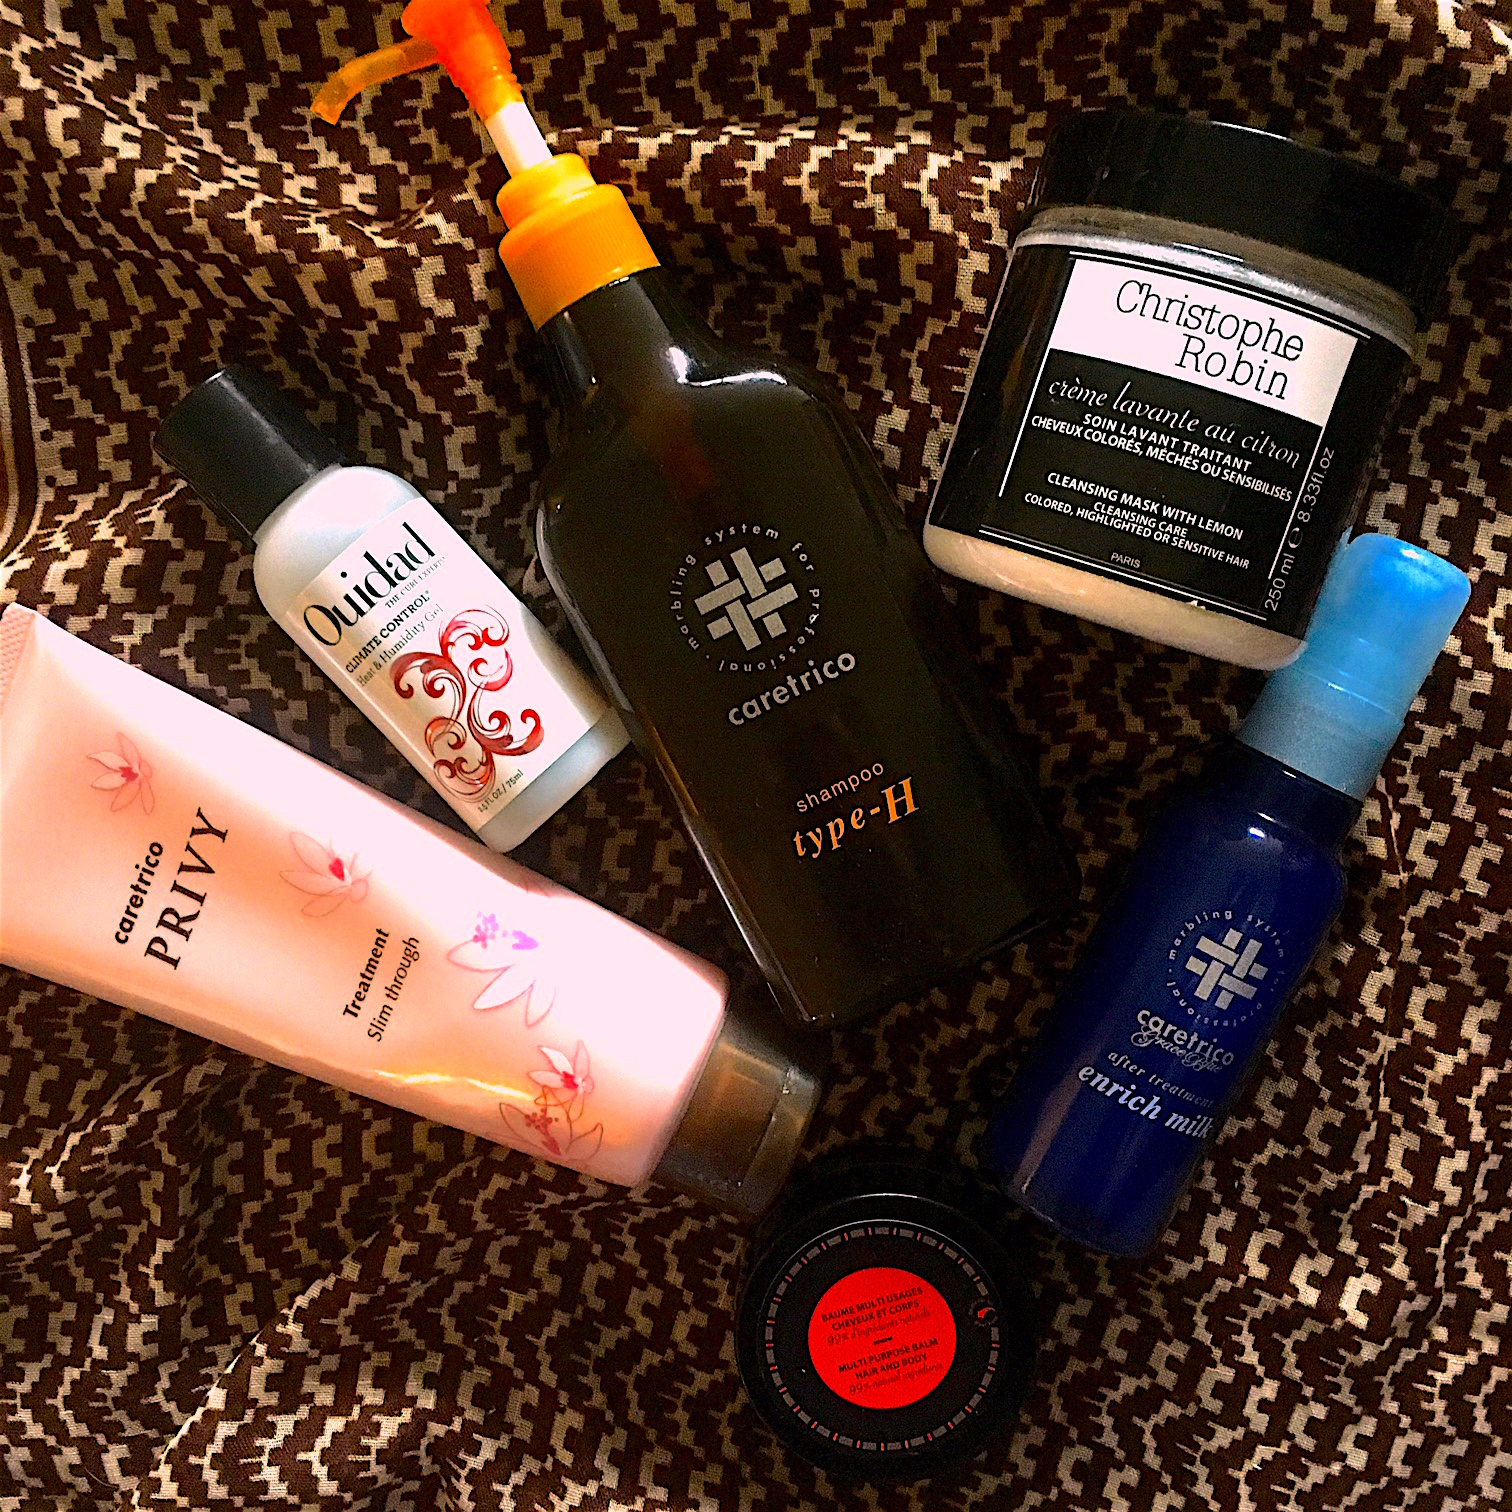 products for curly hair care